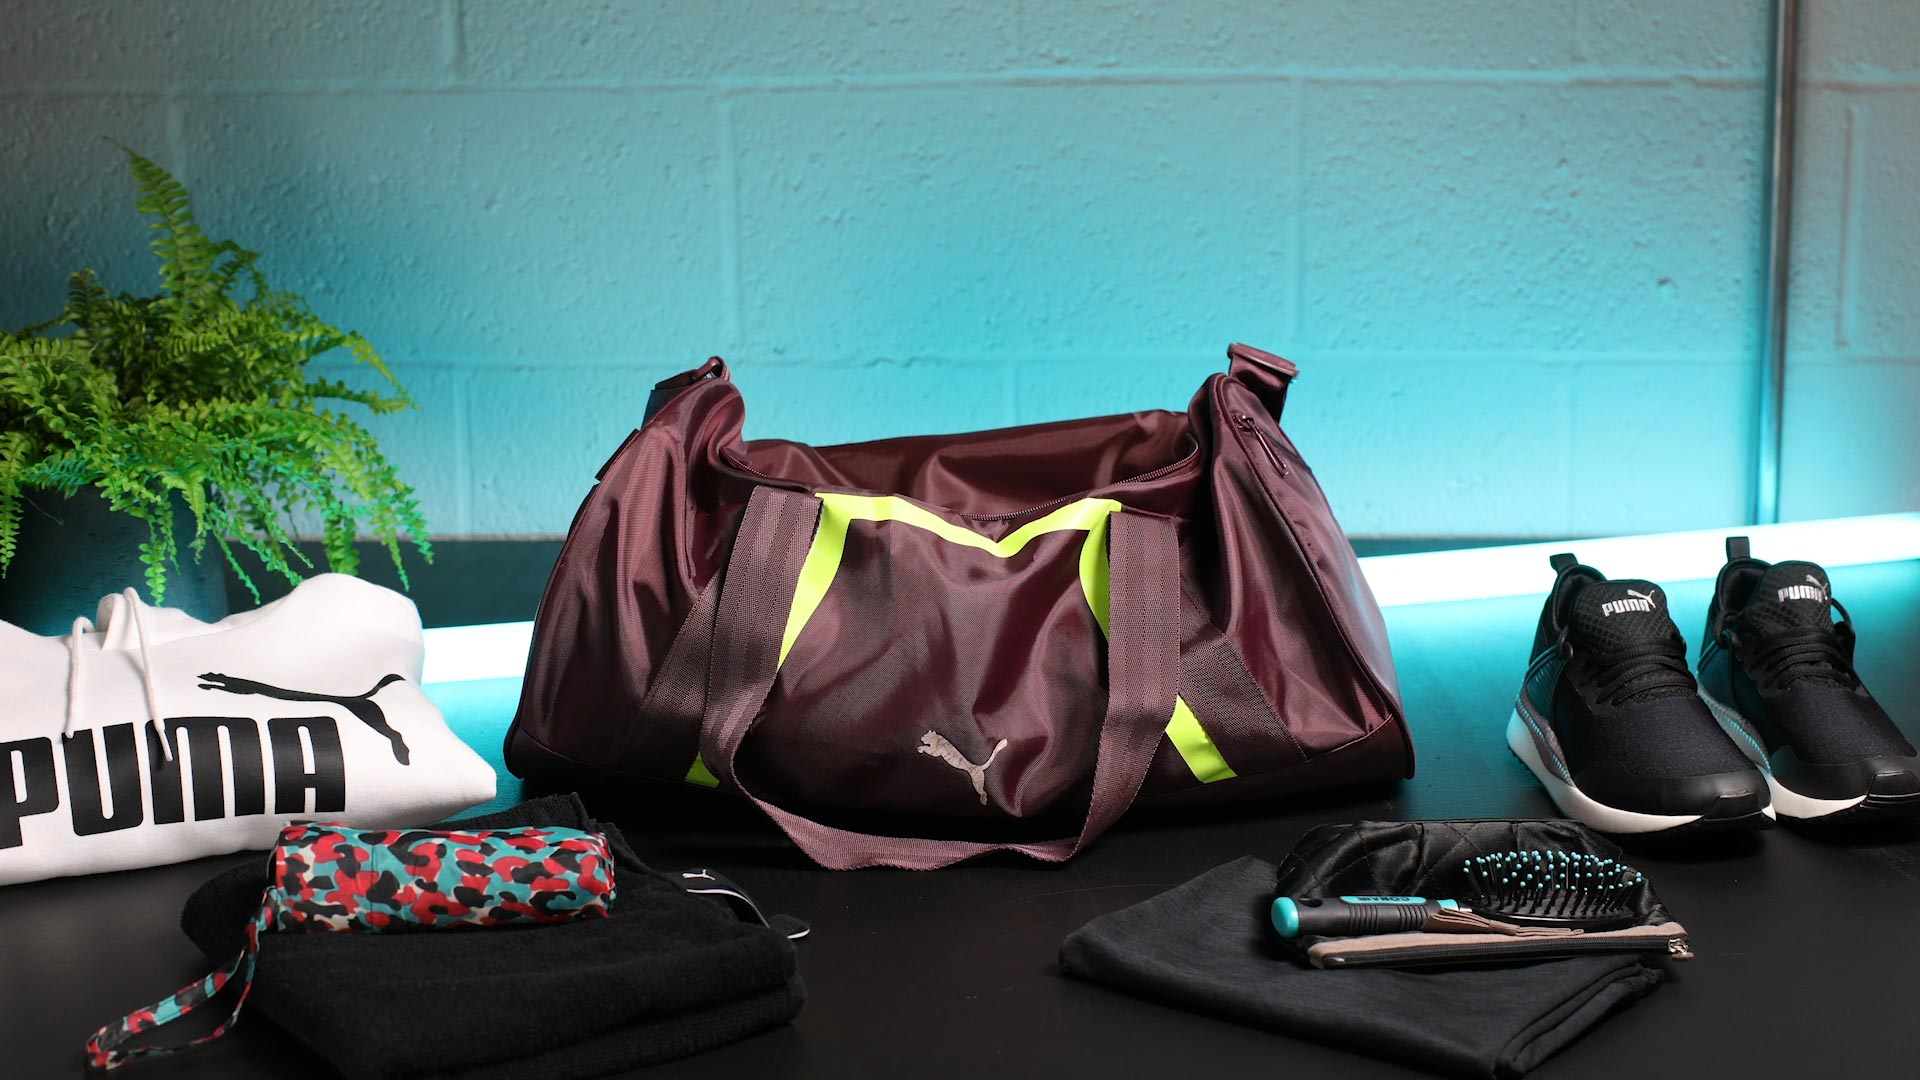 Neatly arranged objects around Puma sports bag stop motion